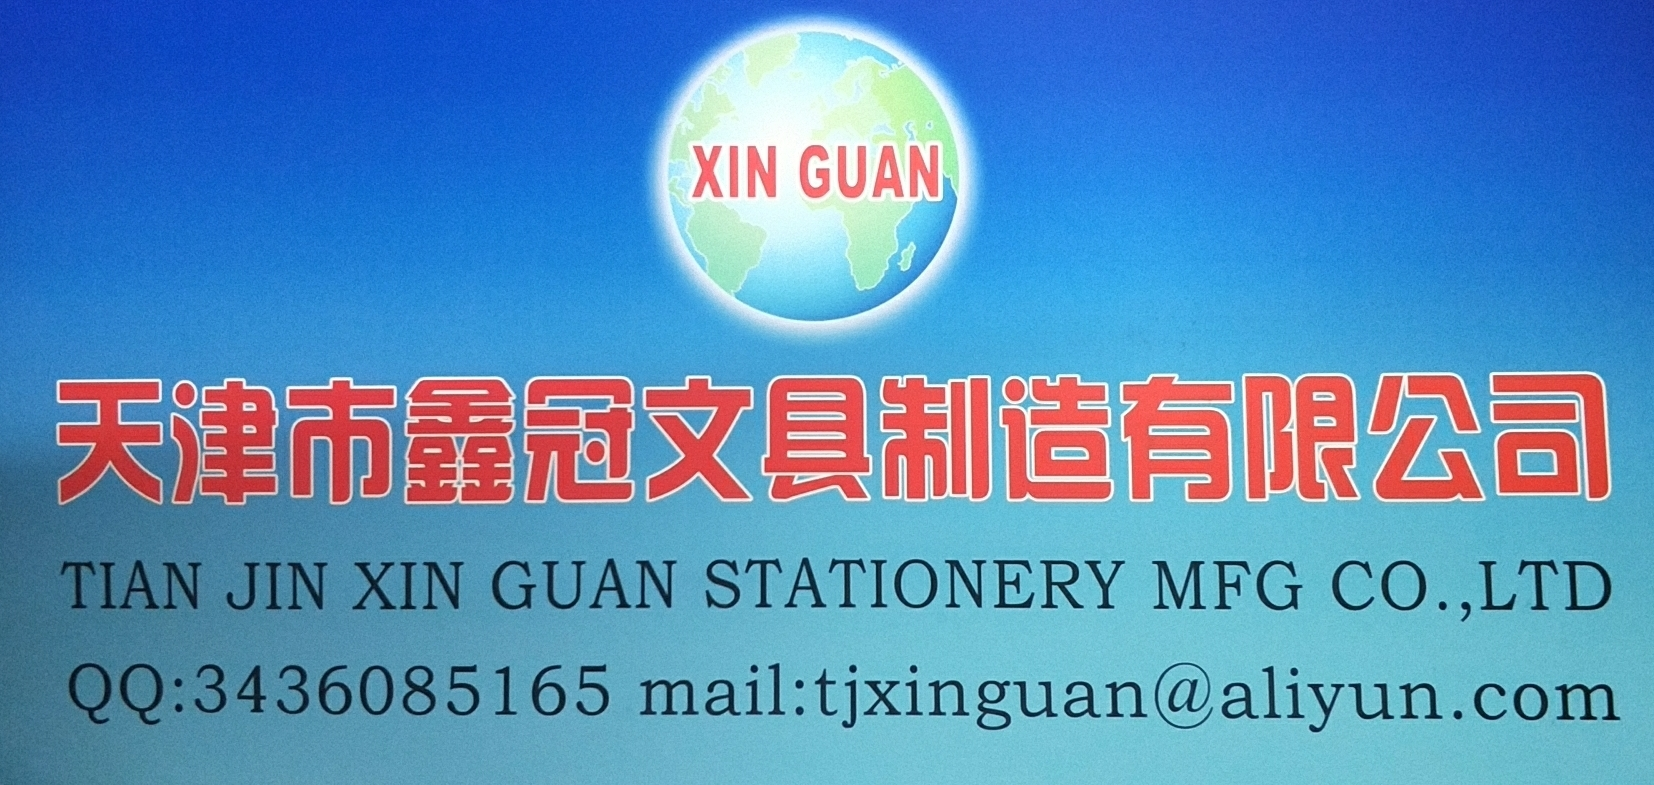 TIANJIN XINGUAN STATIONERT MFG. CO. LTD.